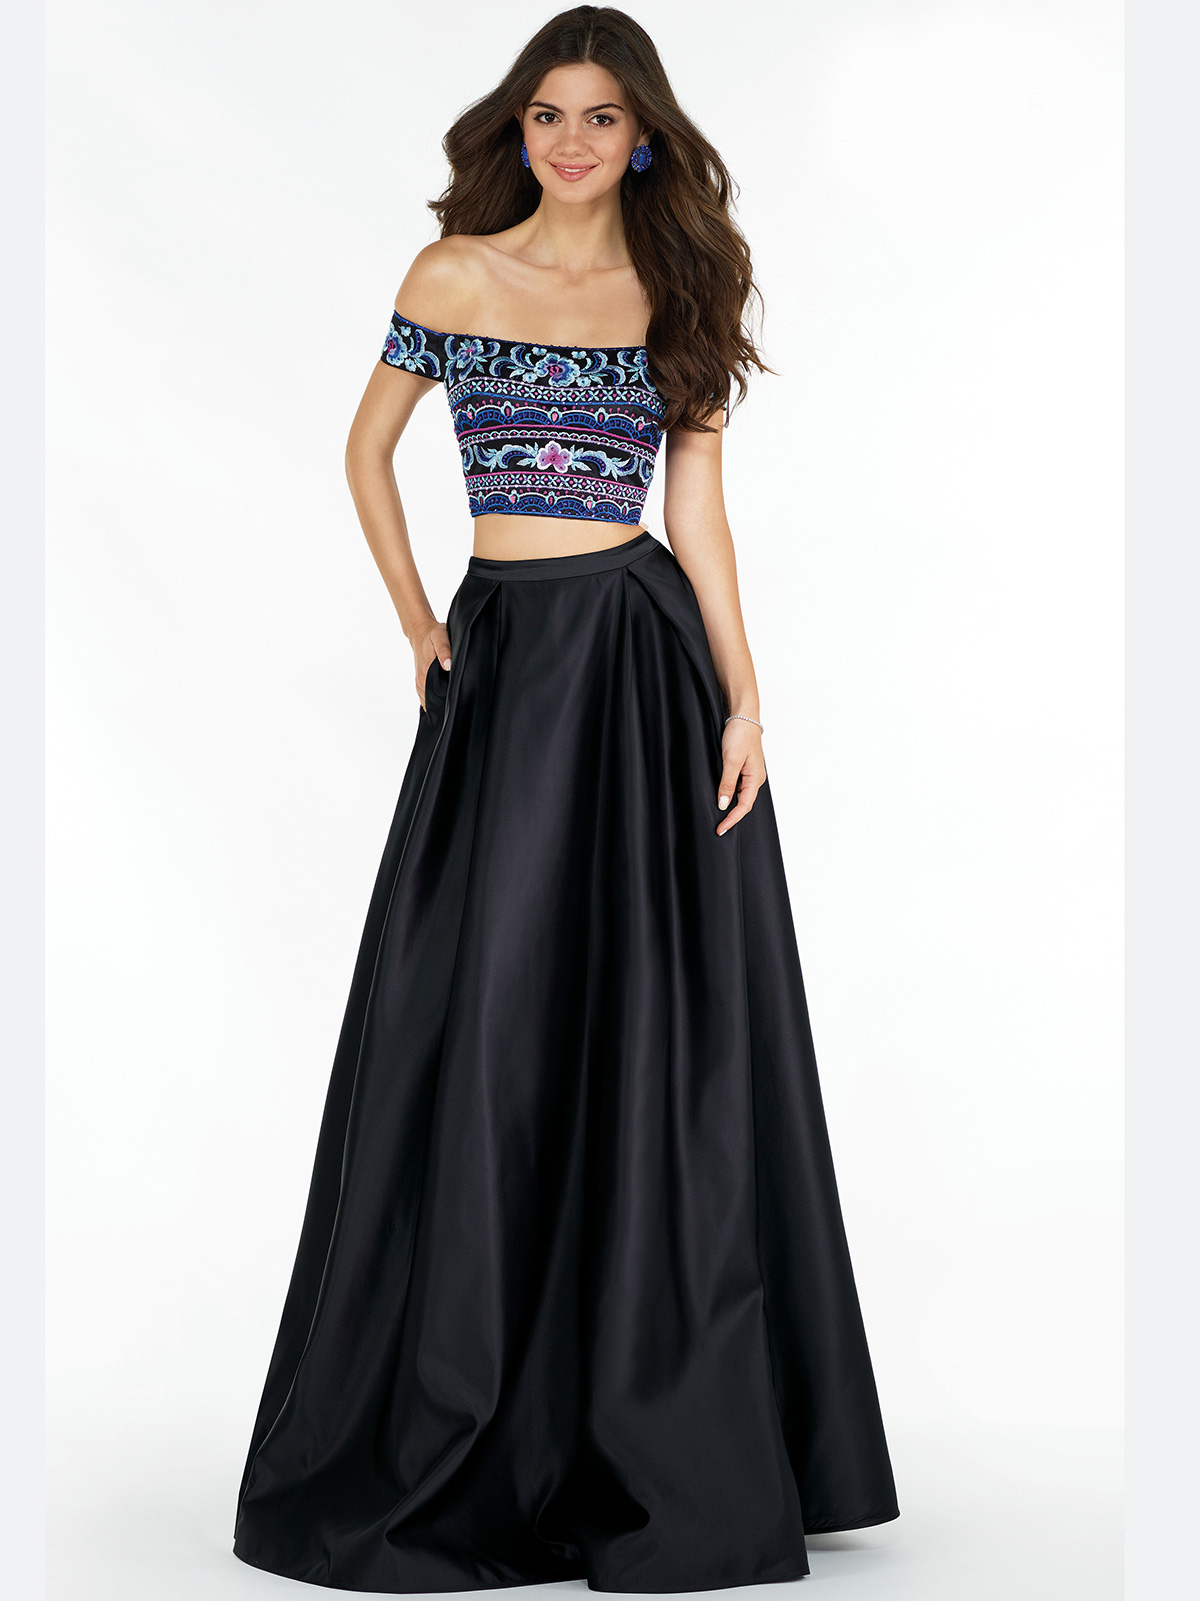 Alyce Paris 6817 Off The Shoulder Two Piece Prom Dress ...